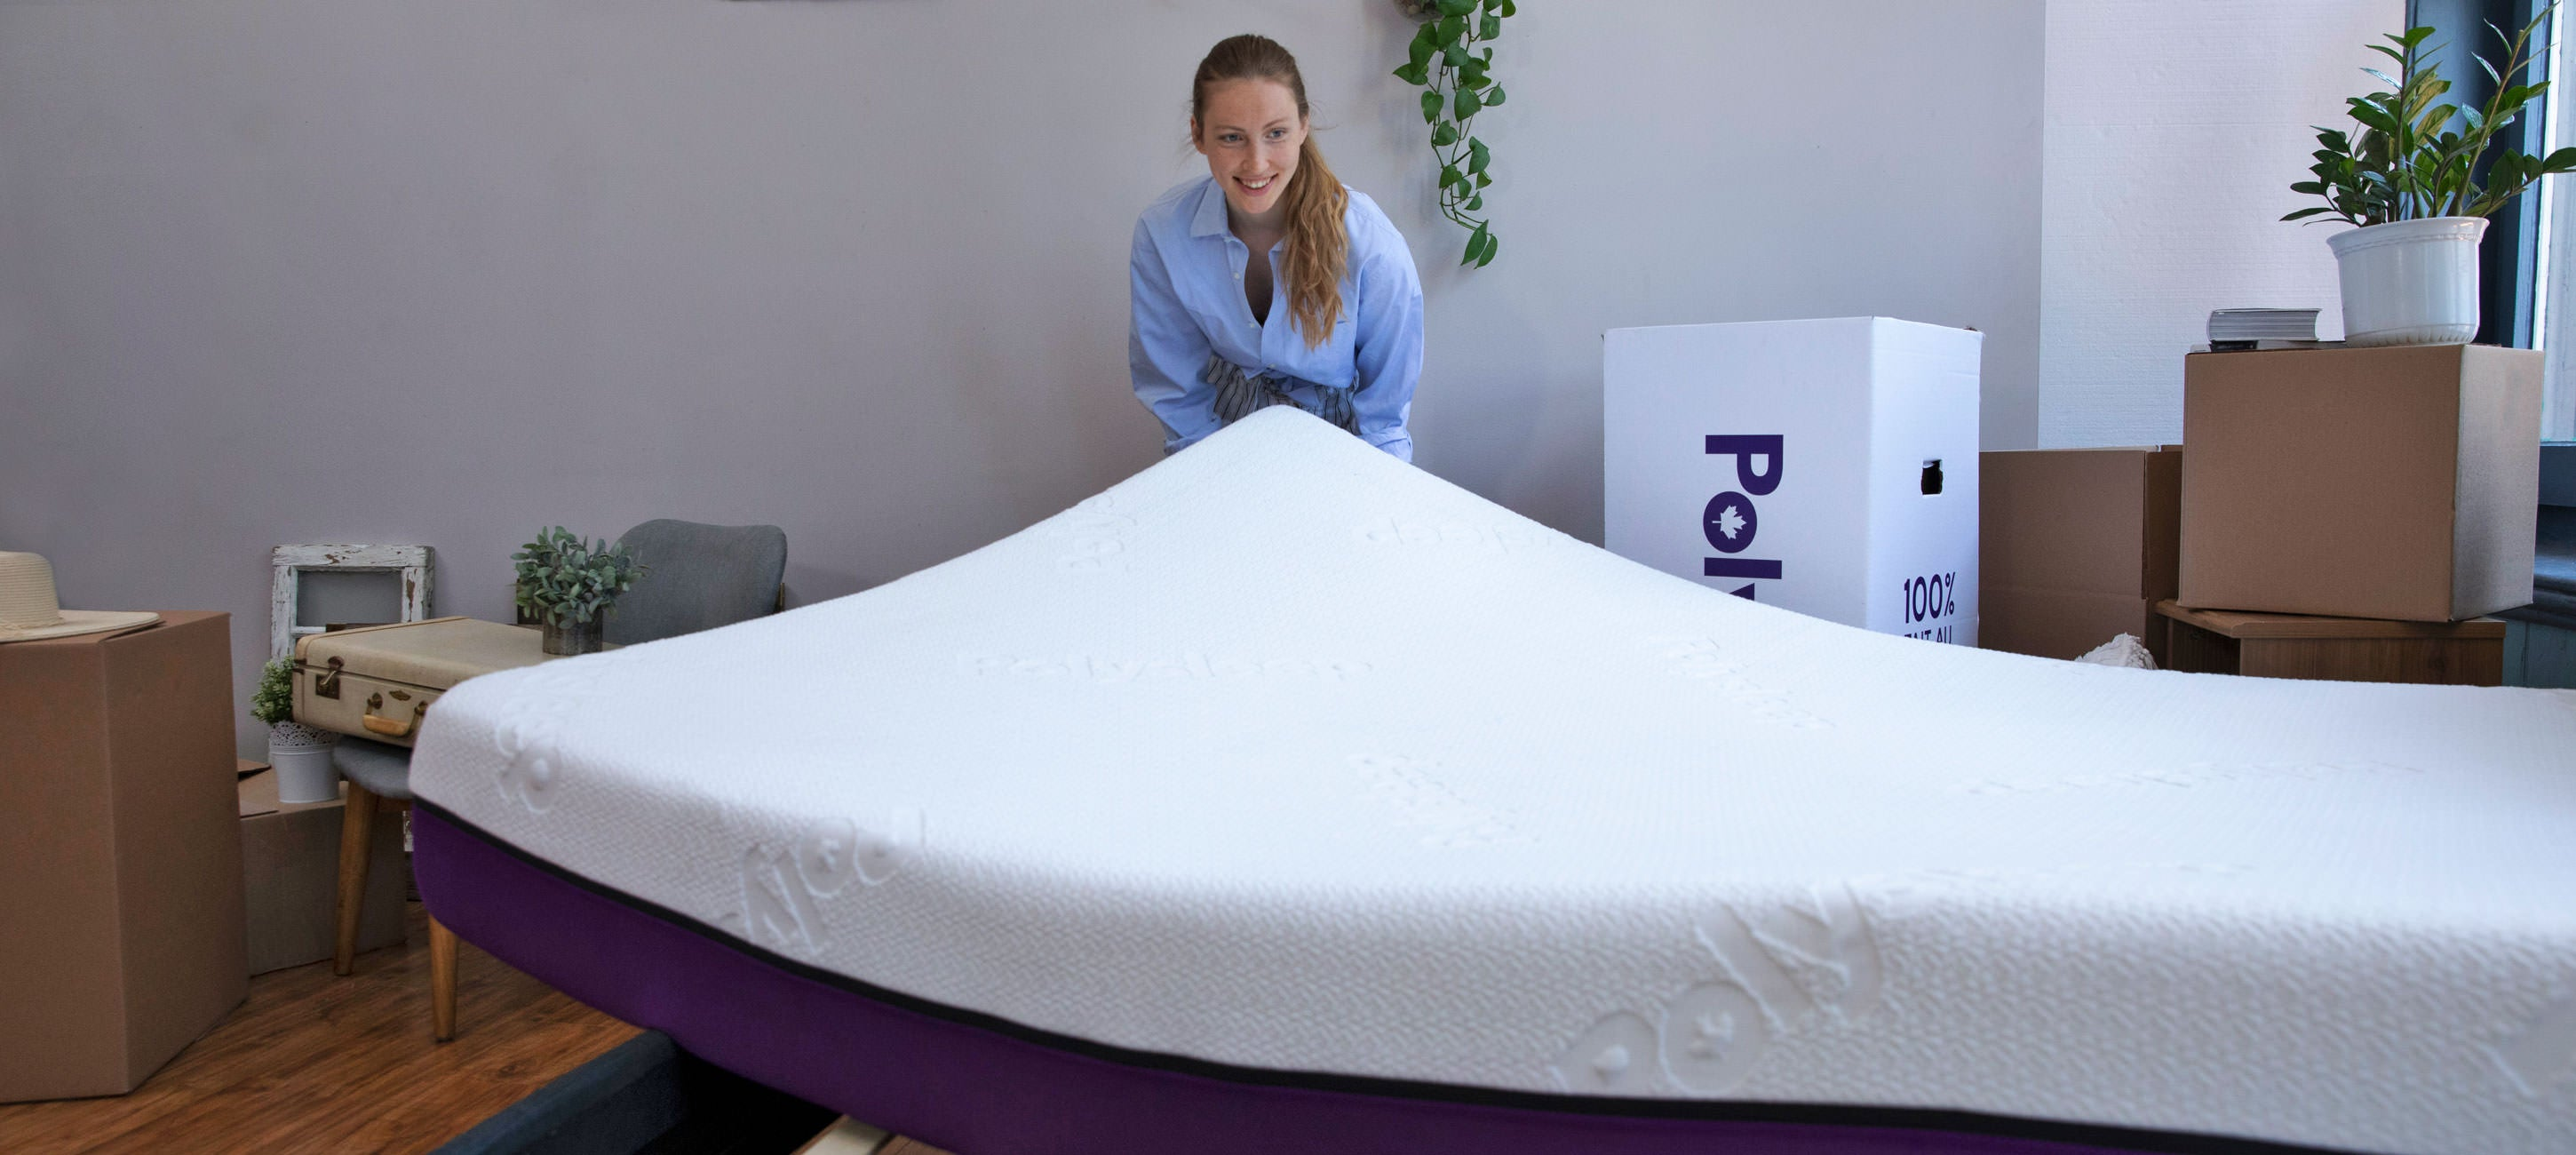 Polysleep mattress installation